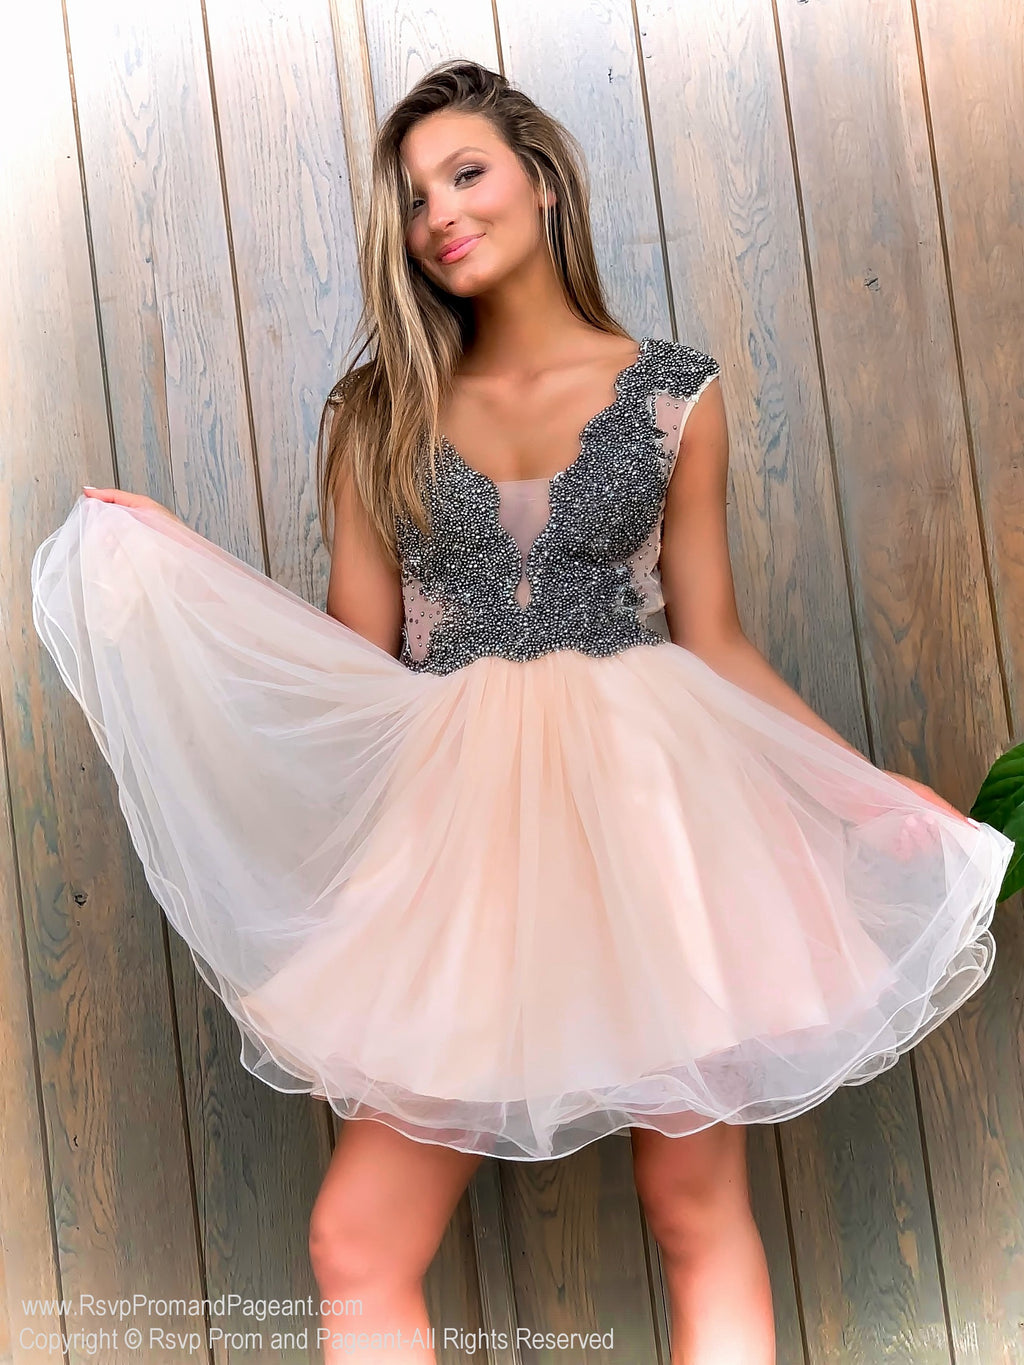 Brunette posing in a Fabulous Short Dress with Completely beaded Top and Full Tulle Skirt at Rsvp Prom and Pageant, the largest prom dress store in the Southeast USA located in metro Atlanta, Georgia